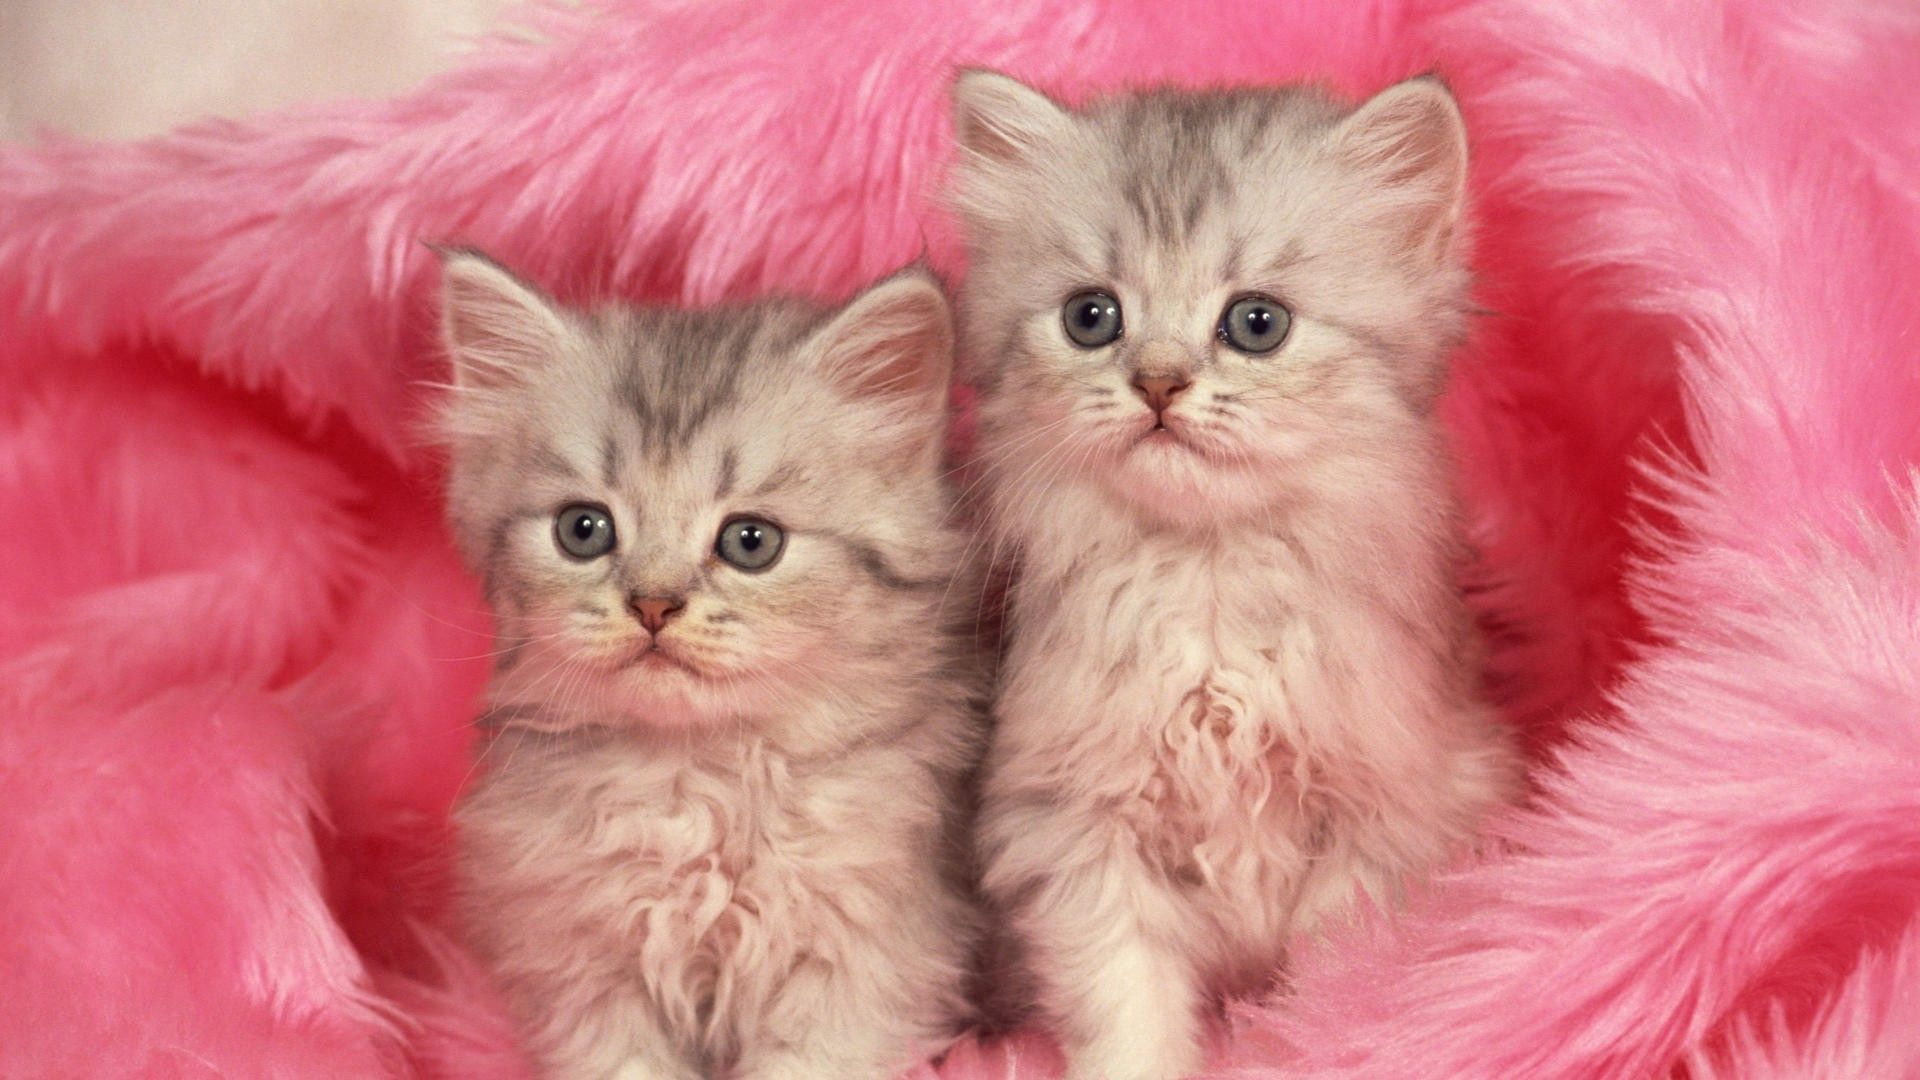 131270 Screensavers and Wallpapers Kittens for phone. Download Animals, Fluffy, Couple, Pair, Fur, Kittens pictures for free